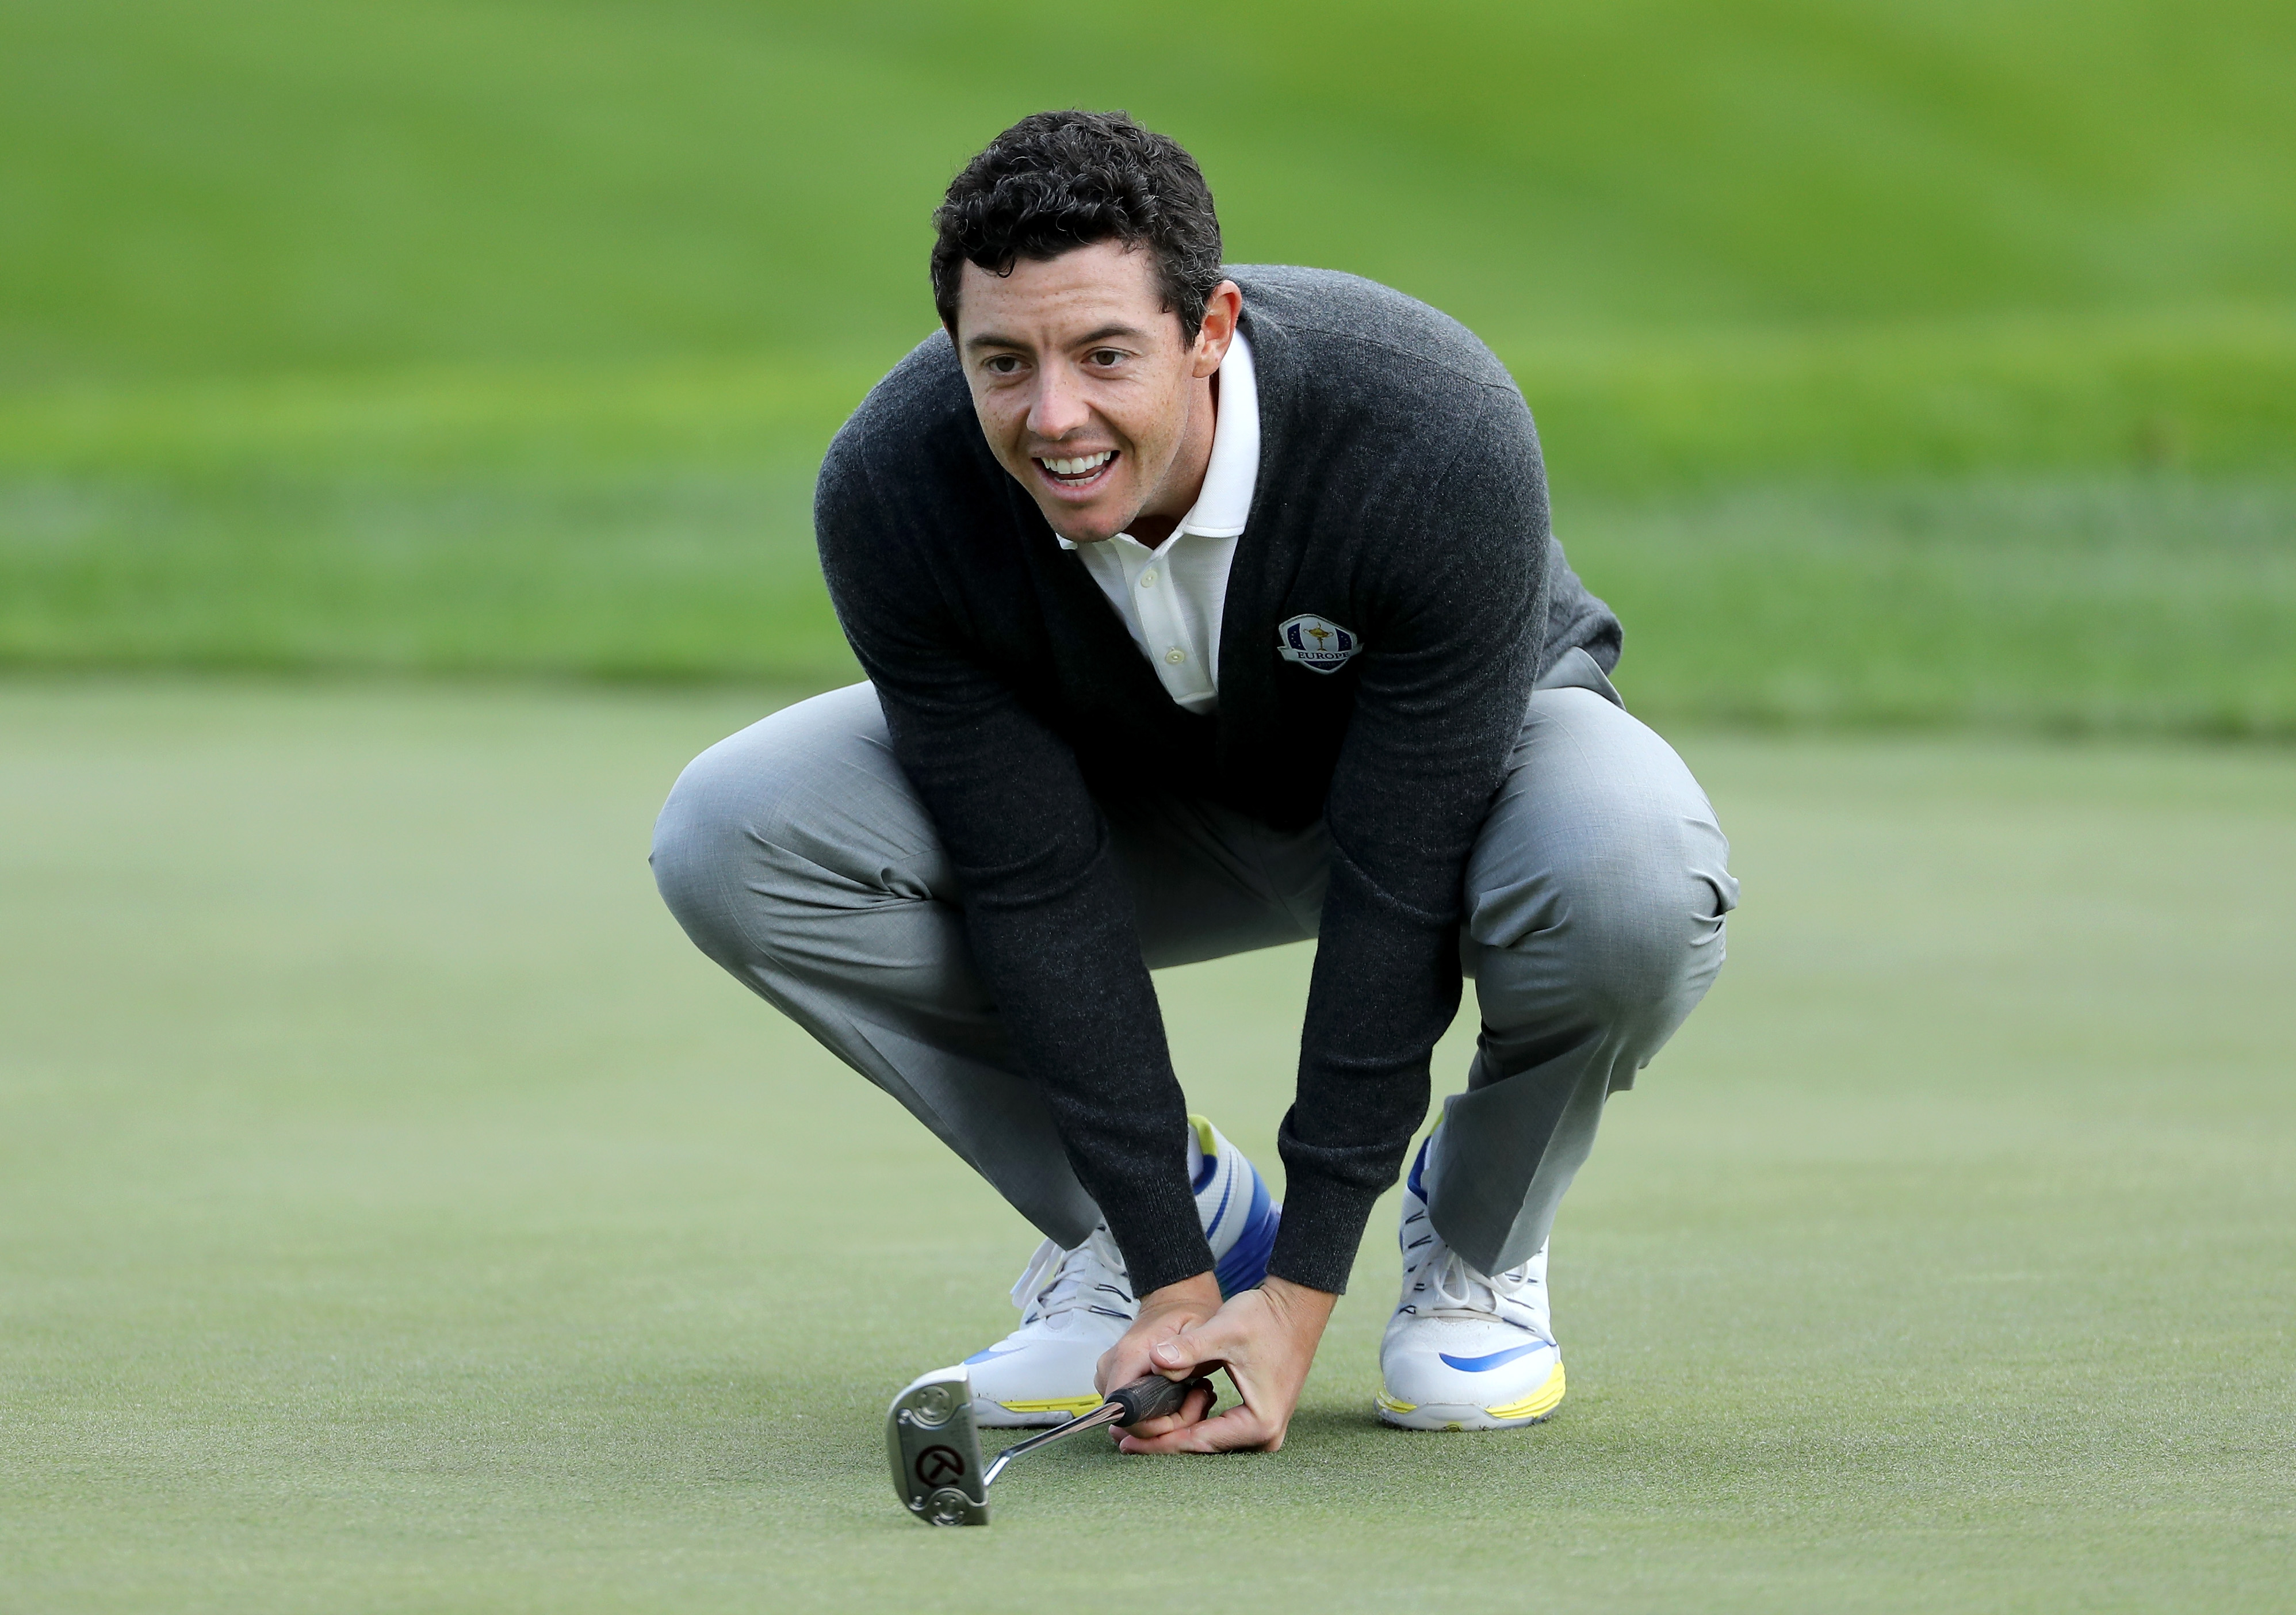 USA Ryder Cup fan shows Rory McIlroy how it's done and sinks putt